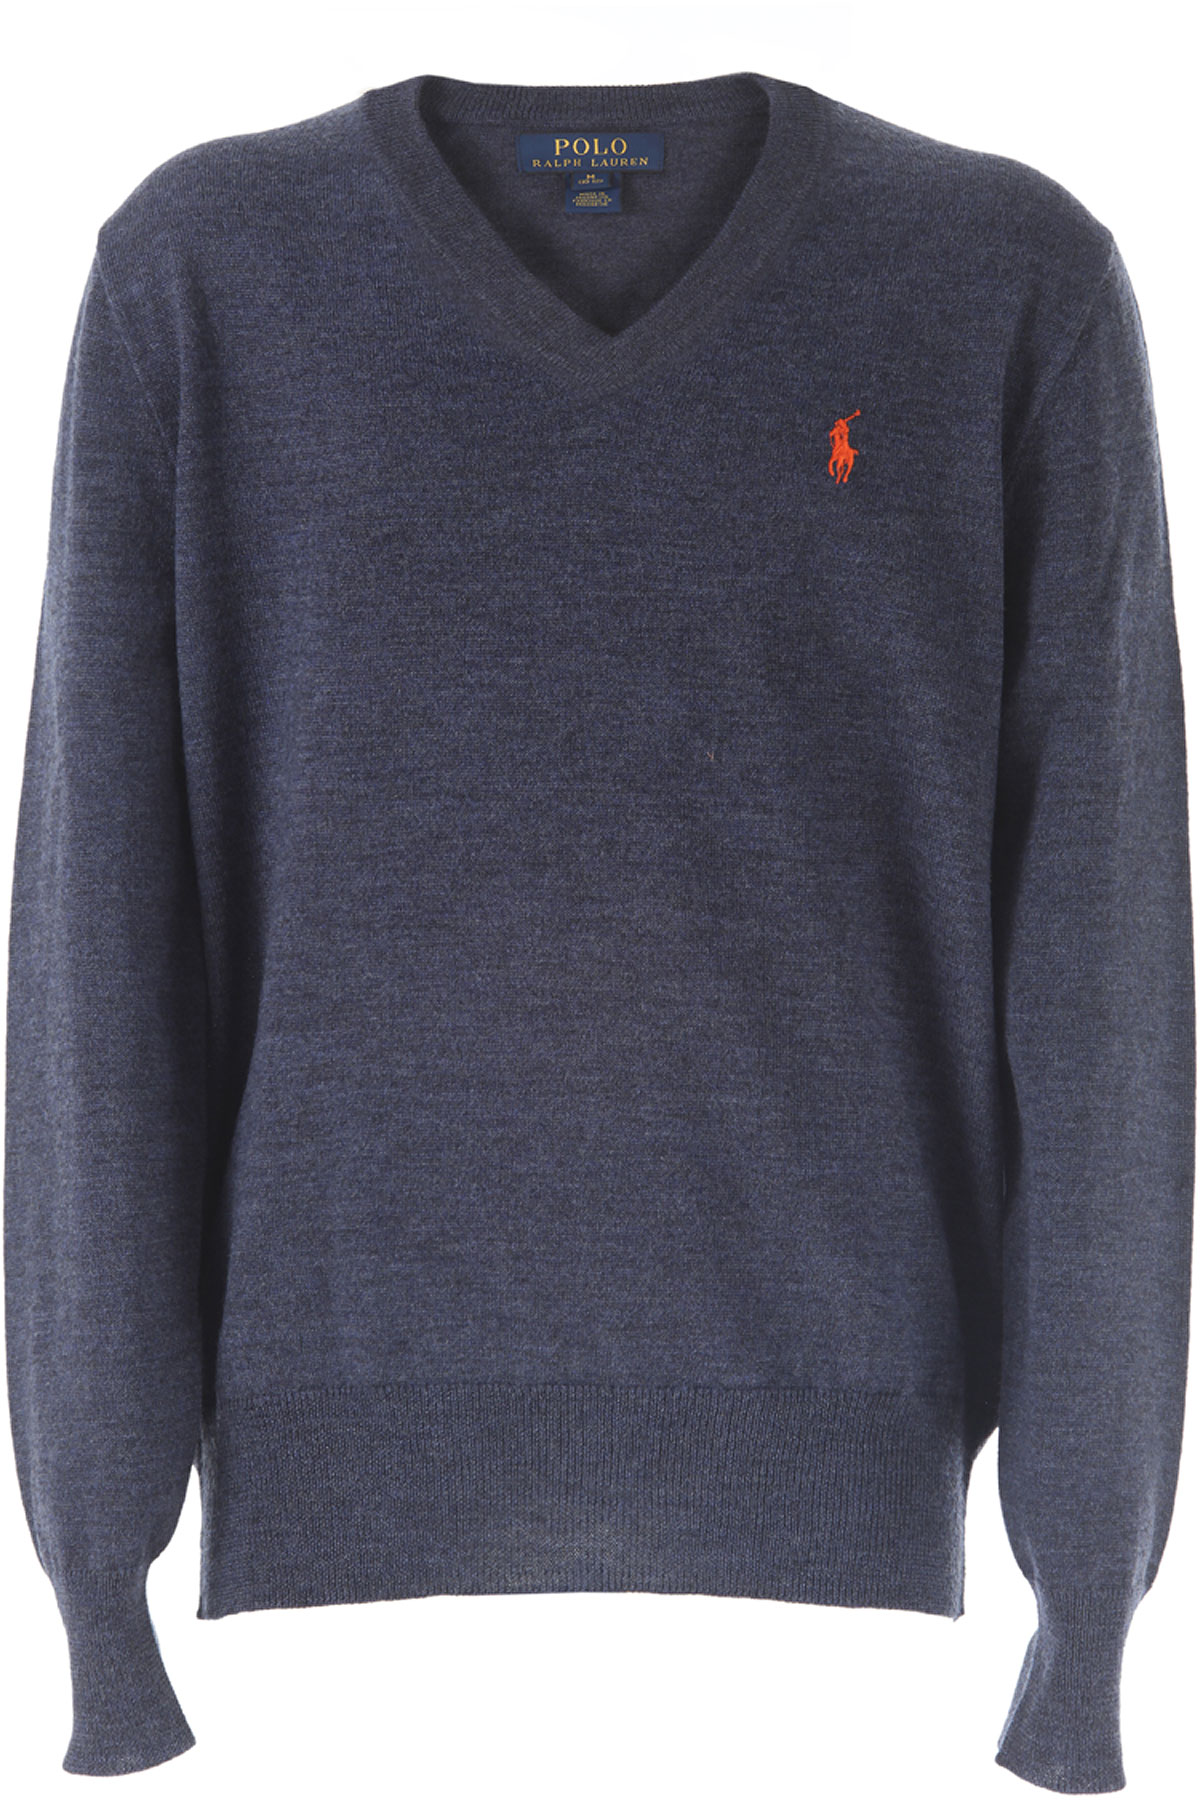 Ralph Lauren Kids Sweaters for Boys On Sale in Outlet, Blue, Wool, 2017, 2Y 3Y 5Y USA-367381